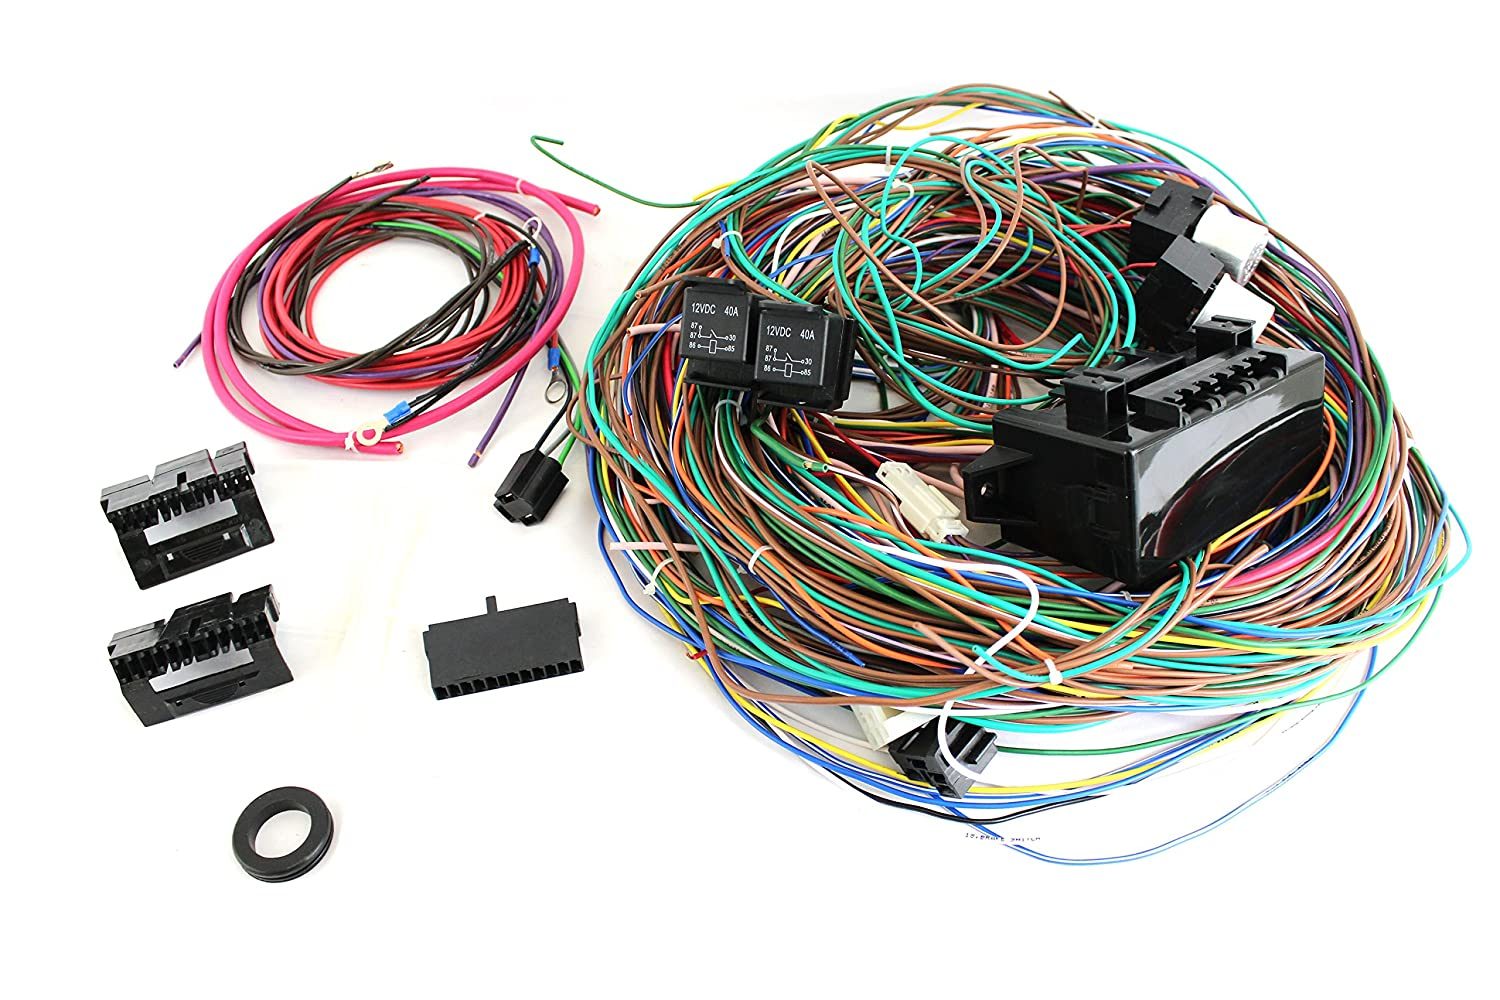 91YoamXFx2L._SL1500_ amazon com 12v 24 circuit 15 fuse street hot rat rod wiring kwik wire harness reviews at soozxer.org